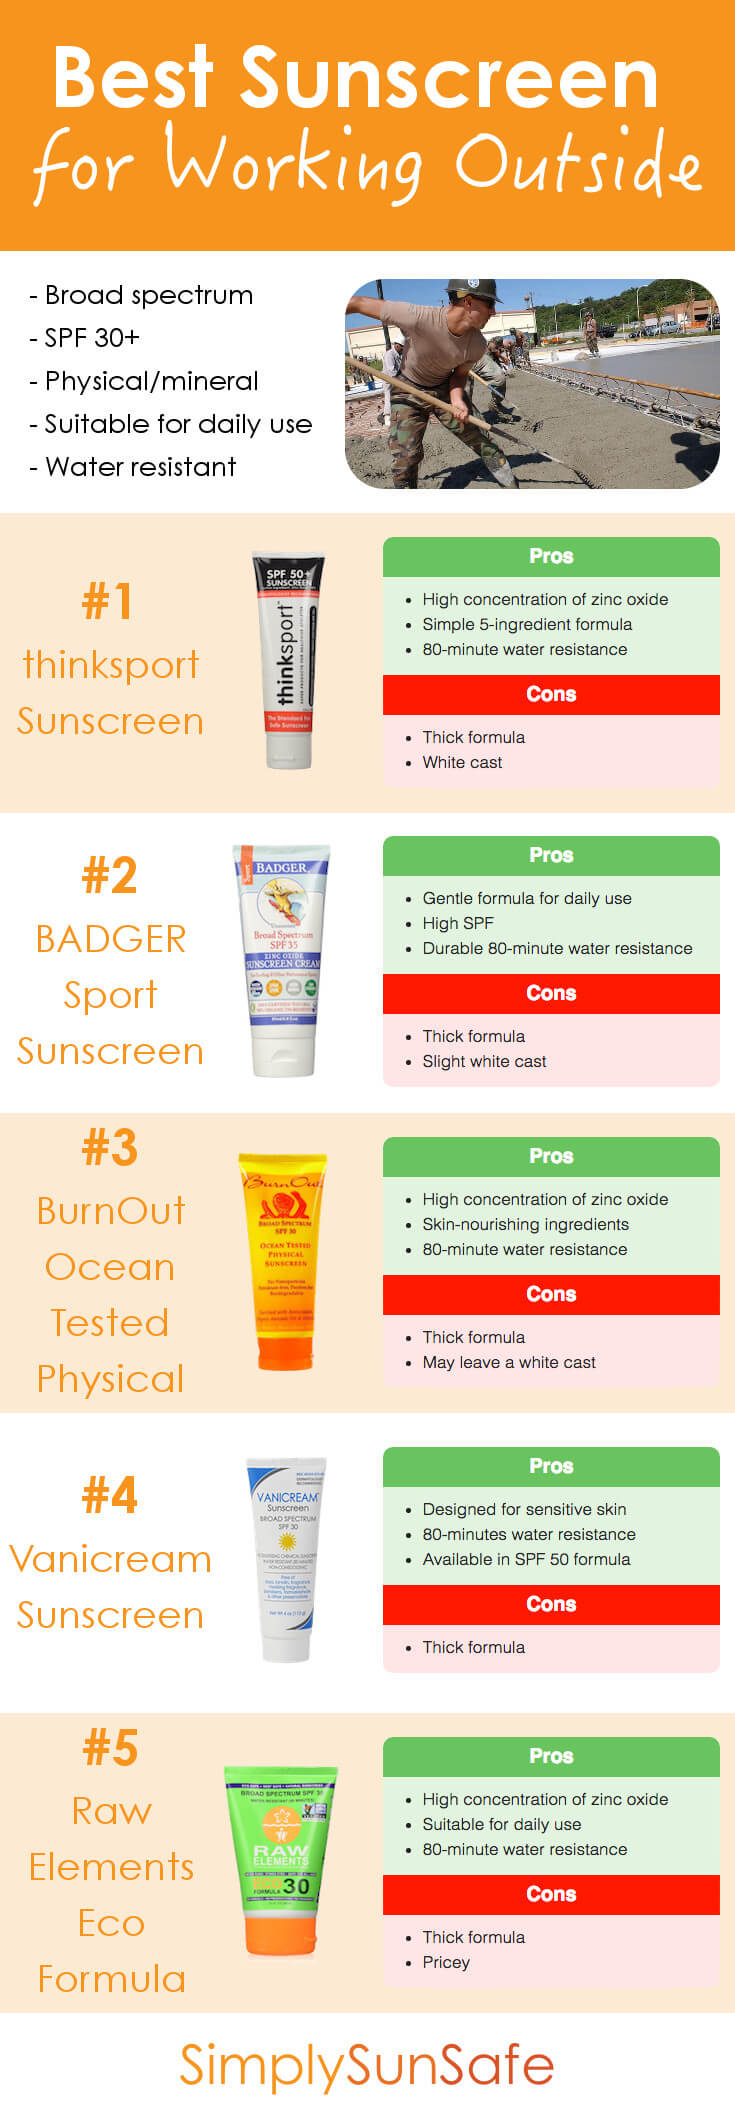 Best Sunscreen for Working Outside Pinterest